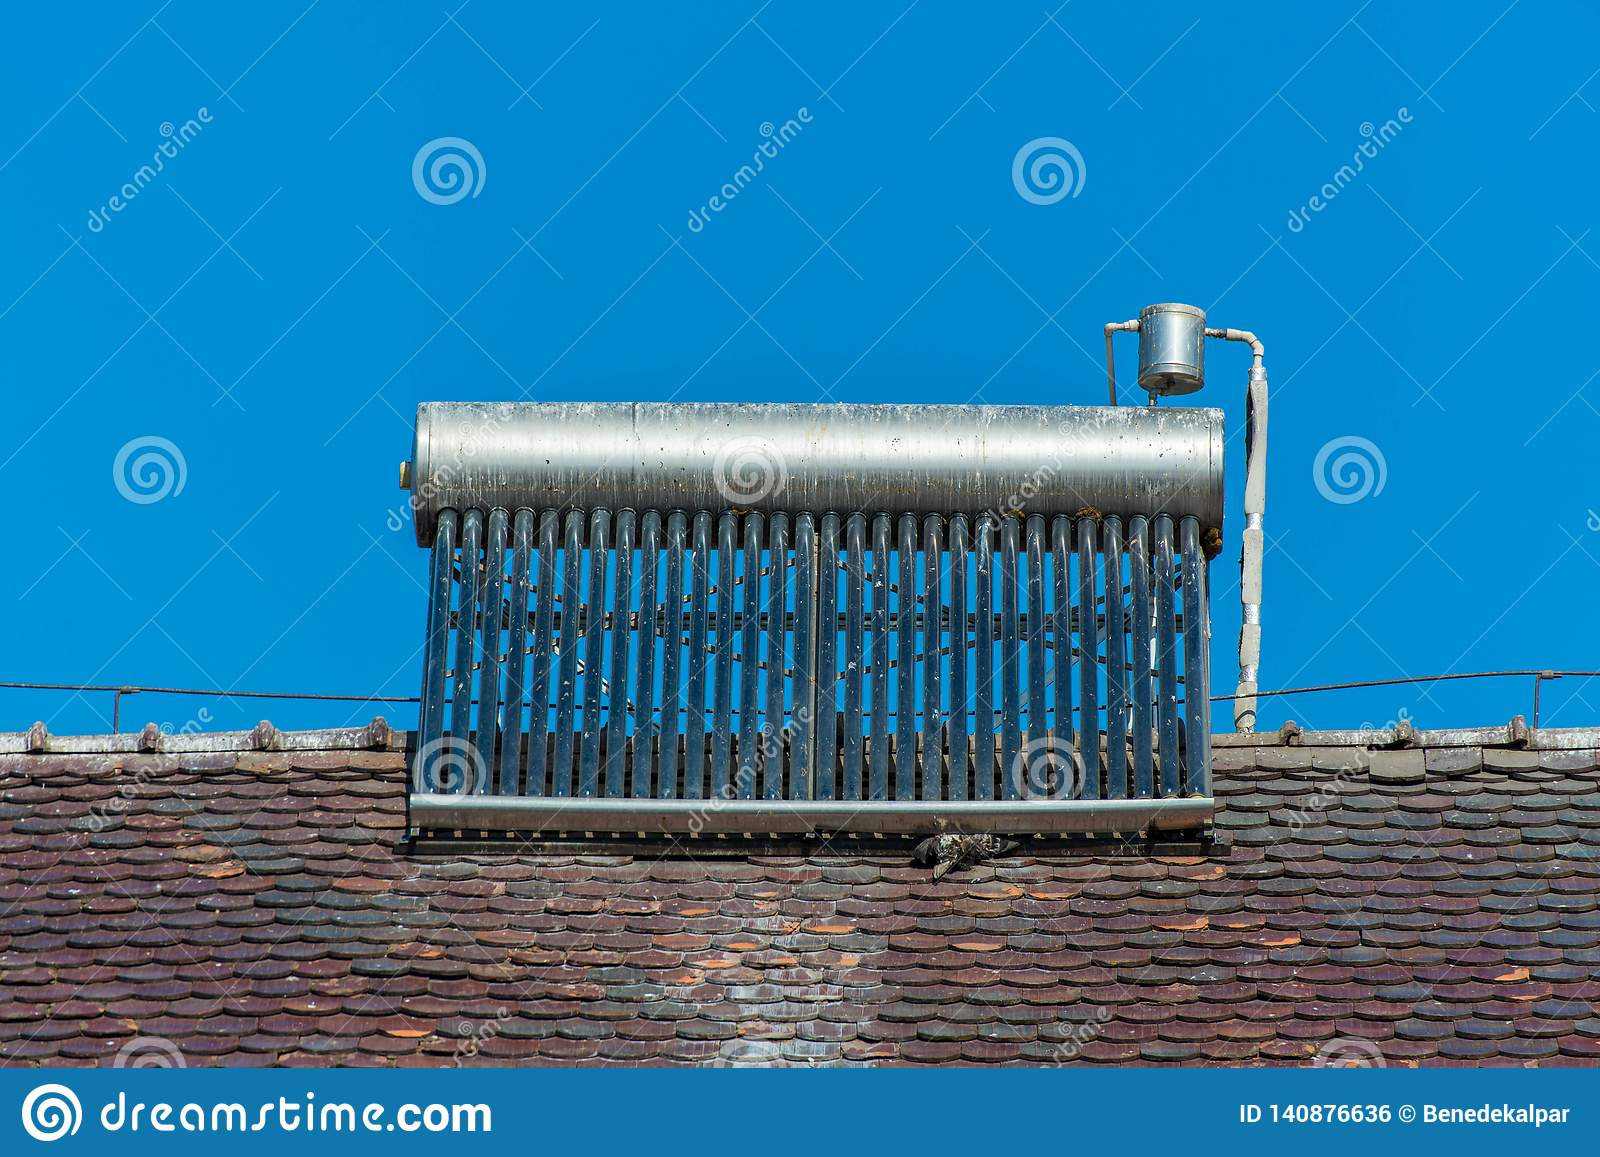 Solar water heater boiler on rooftop, visible bird excrements